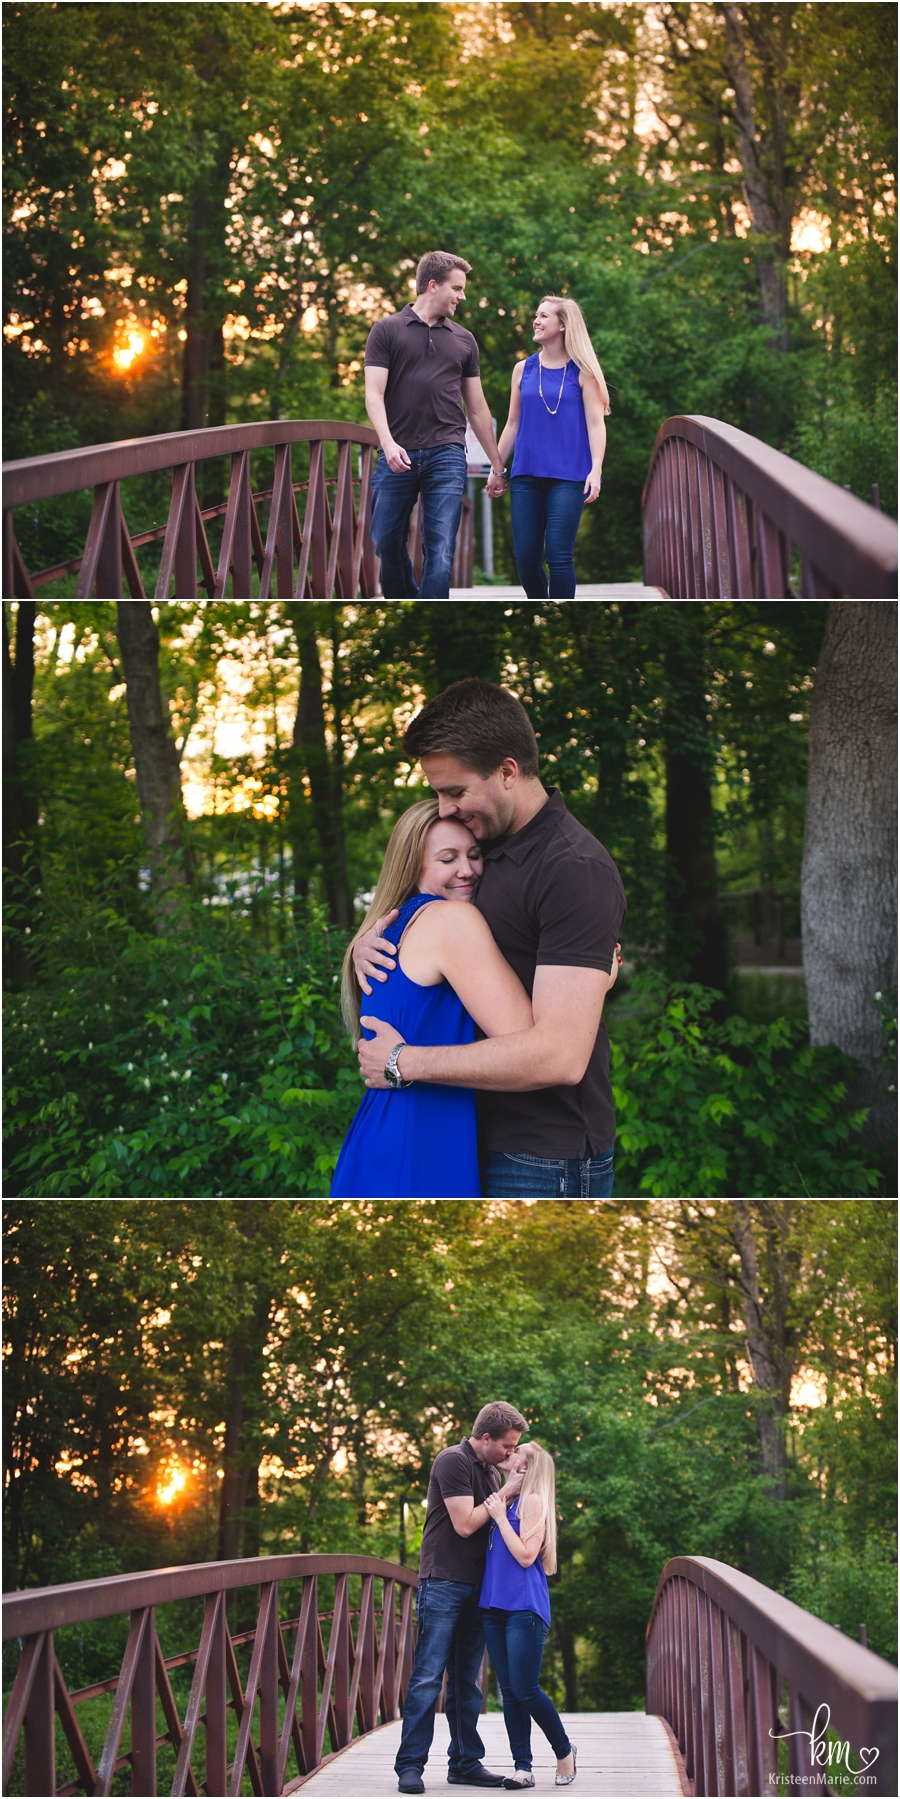 bridge poses for engagement session - engagement photography